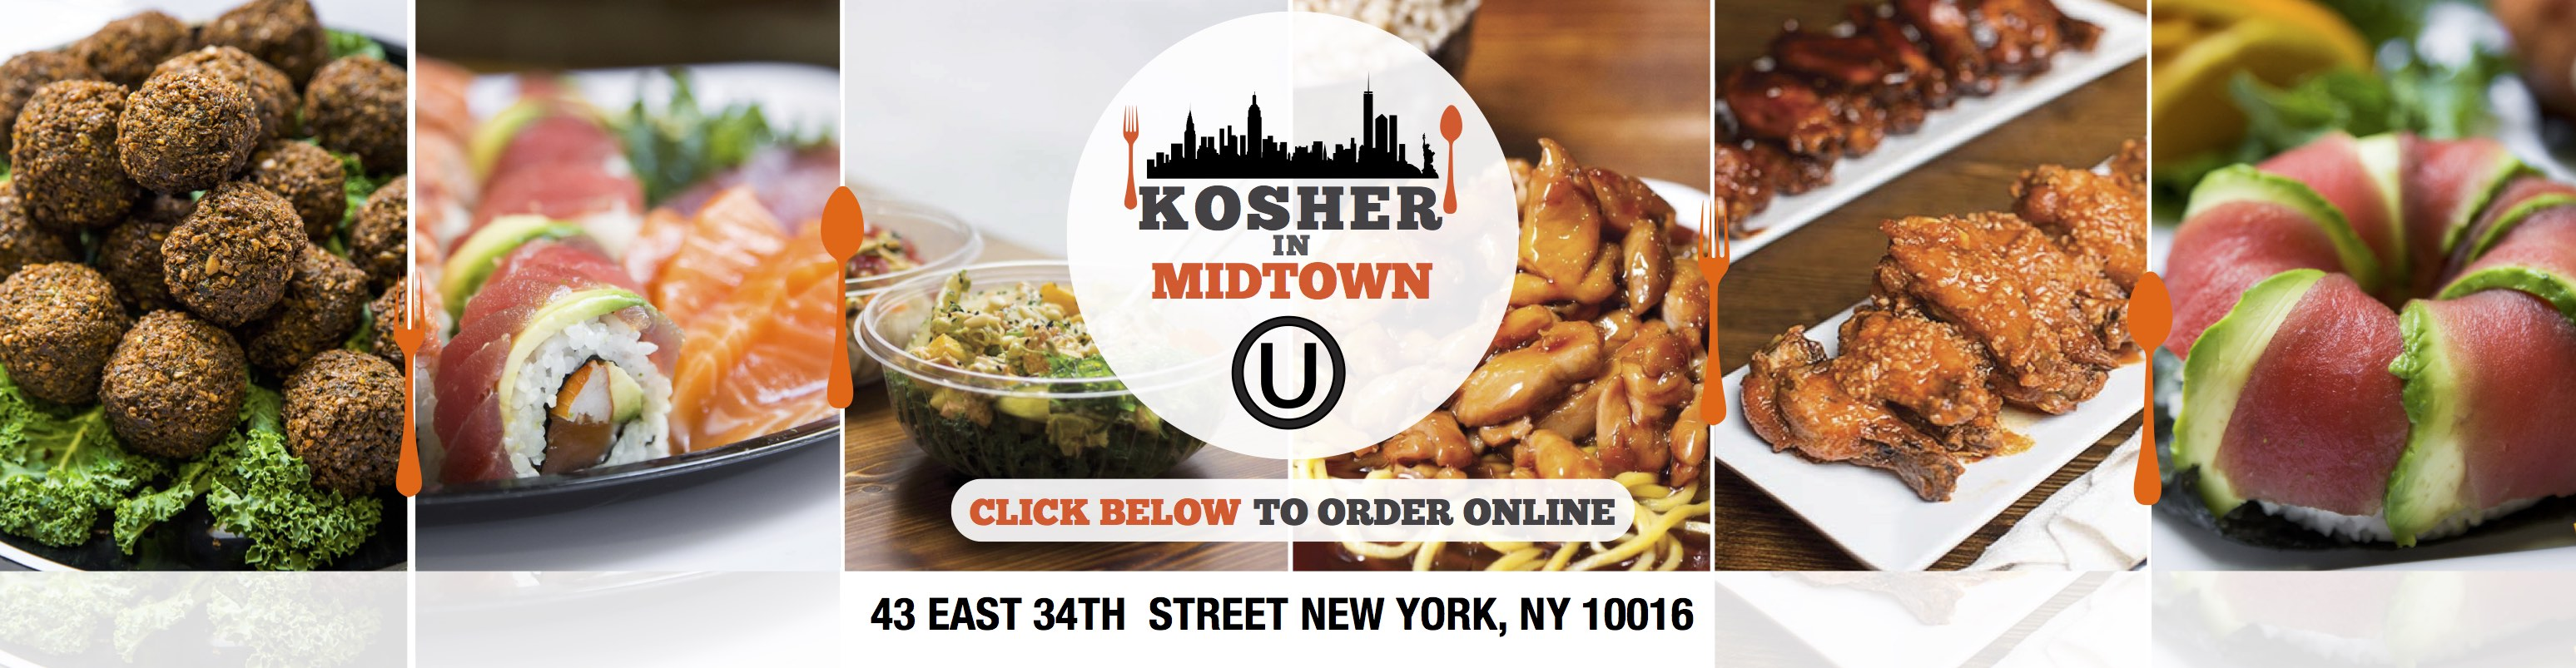 kosher in midtown kosher food in new york city 1240X324